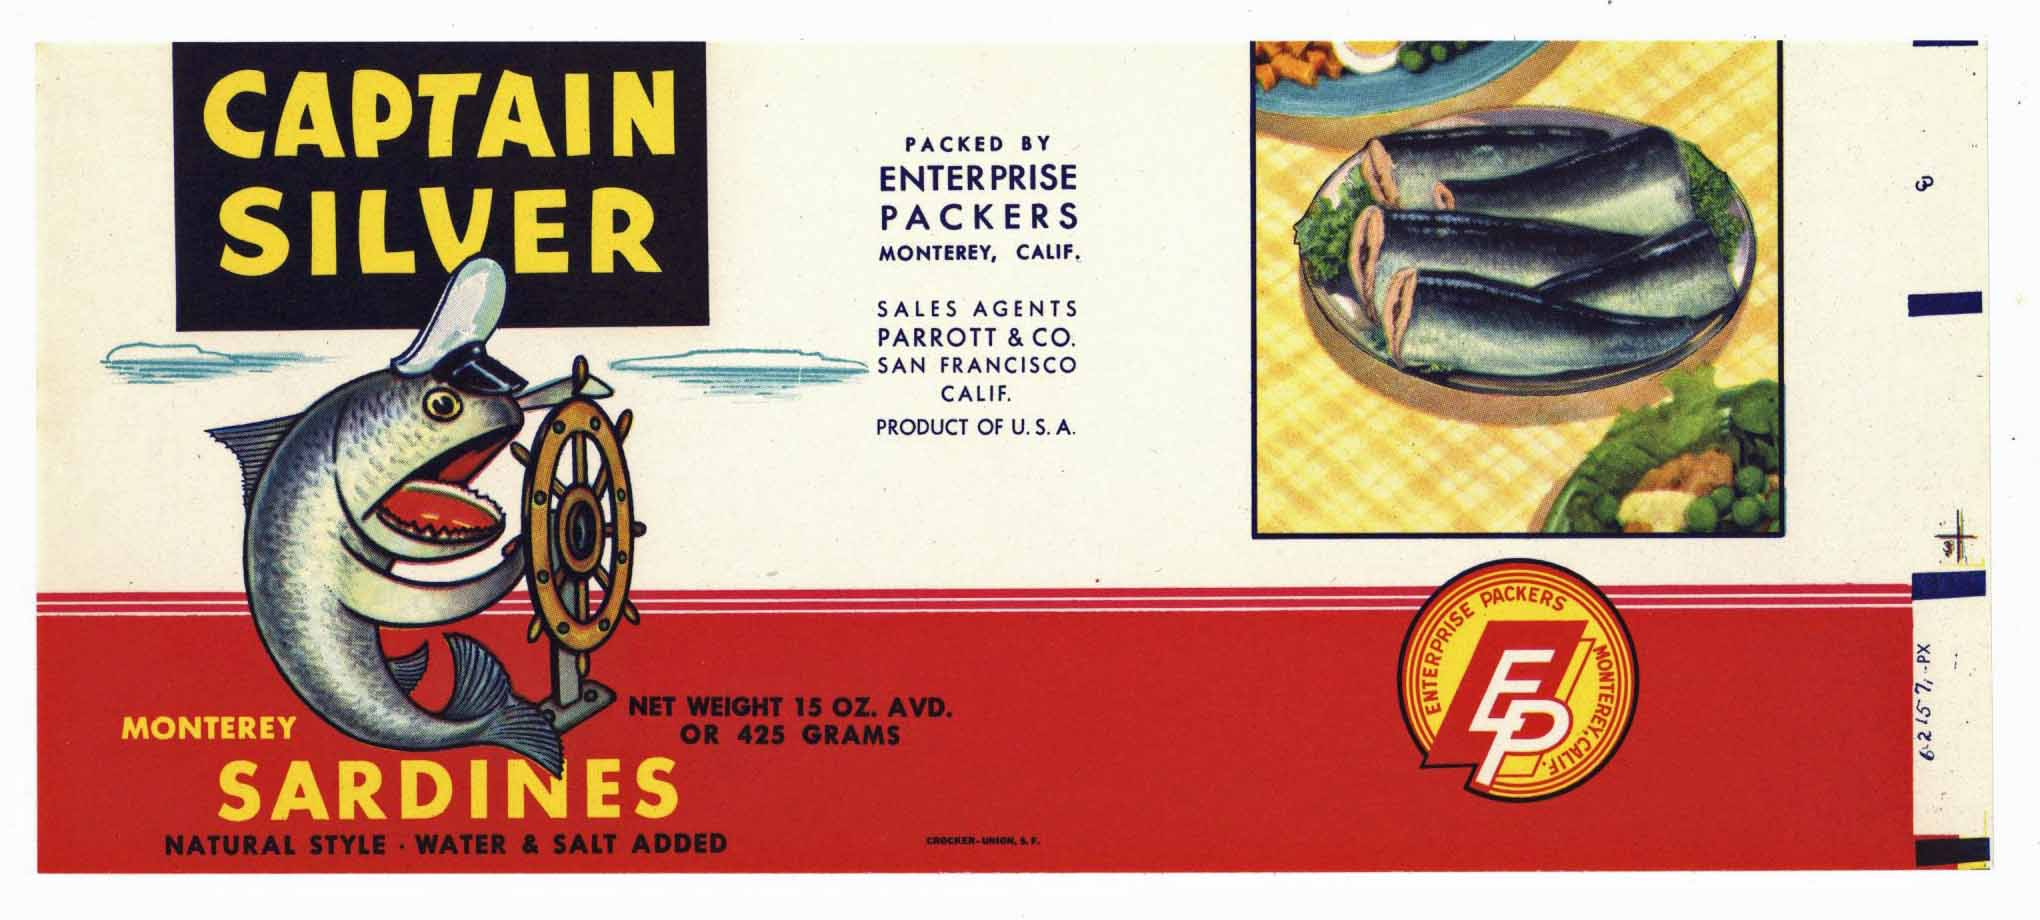 CAPTAIN SILVER Brand Vintage Sardine Can Label (CAN0228)